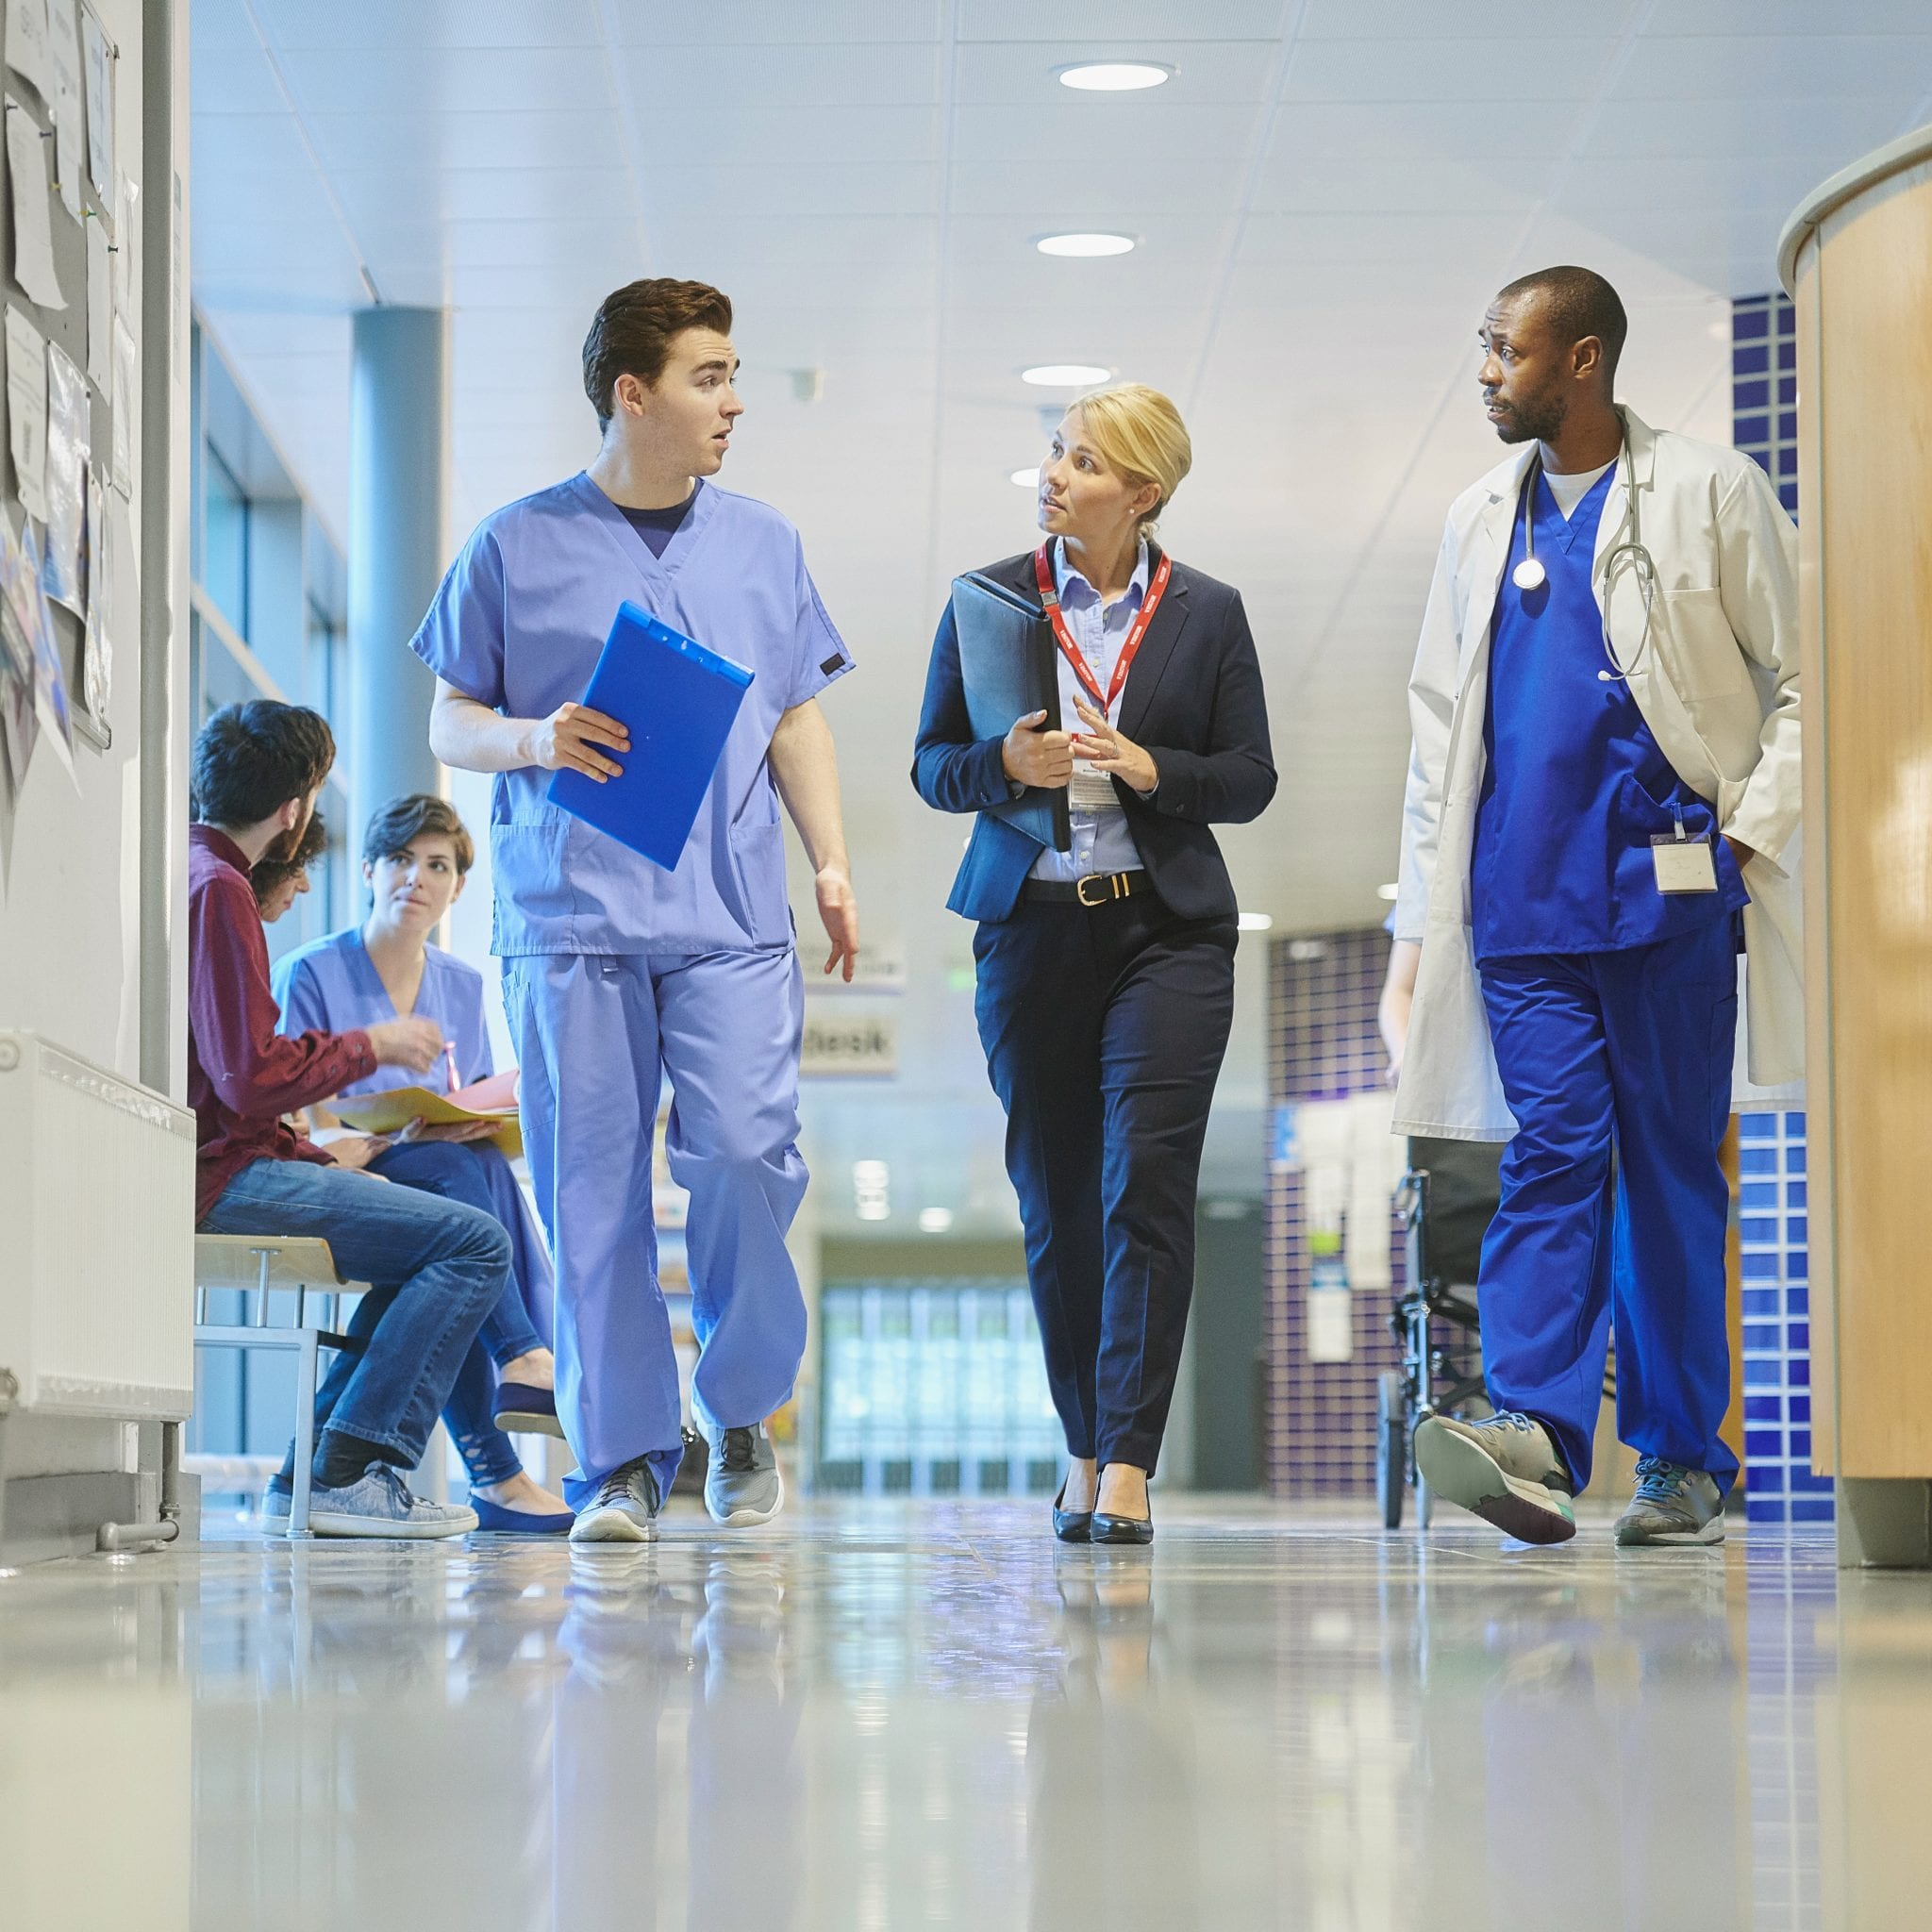 Medical Legal Professionals walking down a hallway